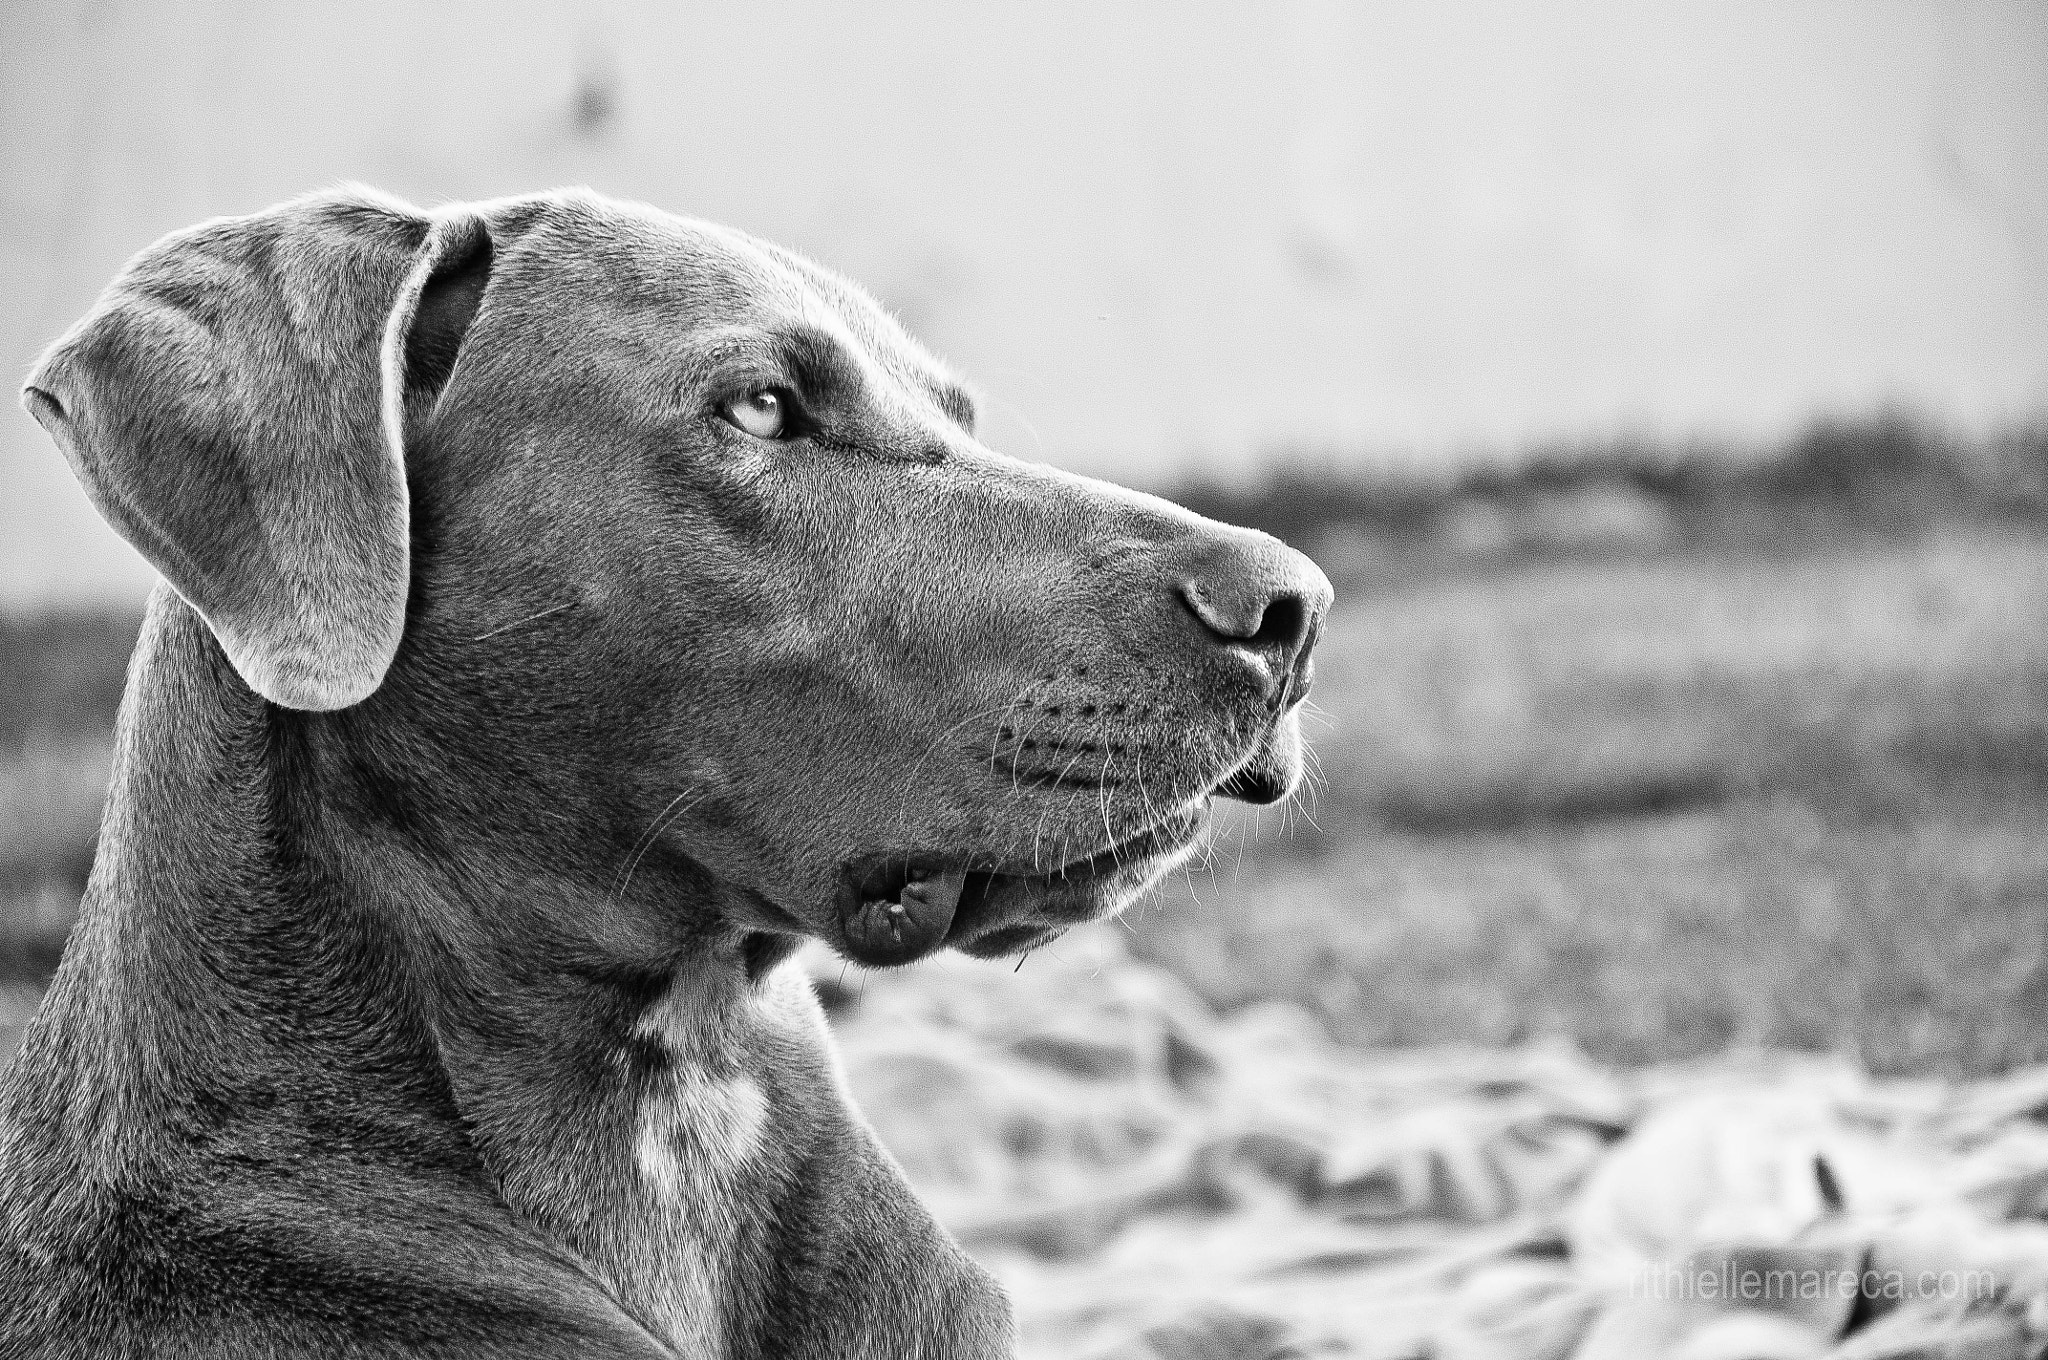 Photograph Dog by Rithielle Mareca on 500px